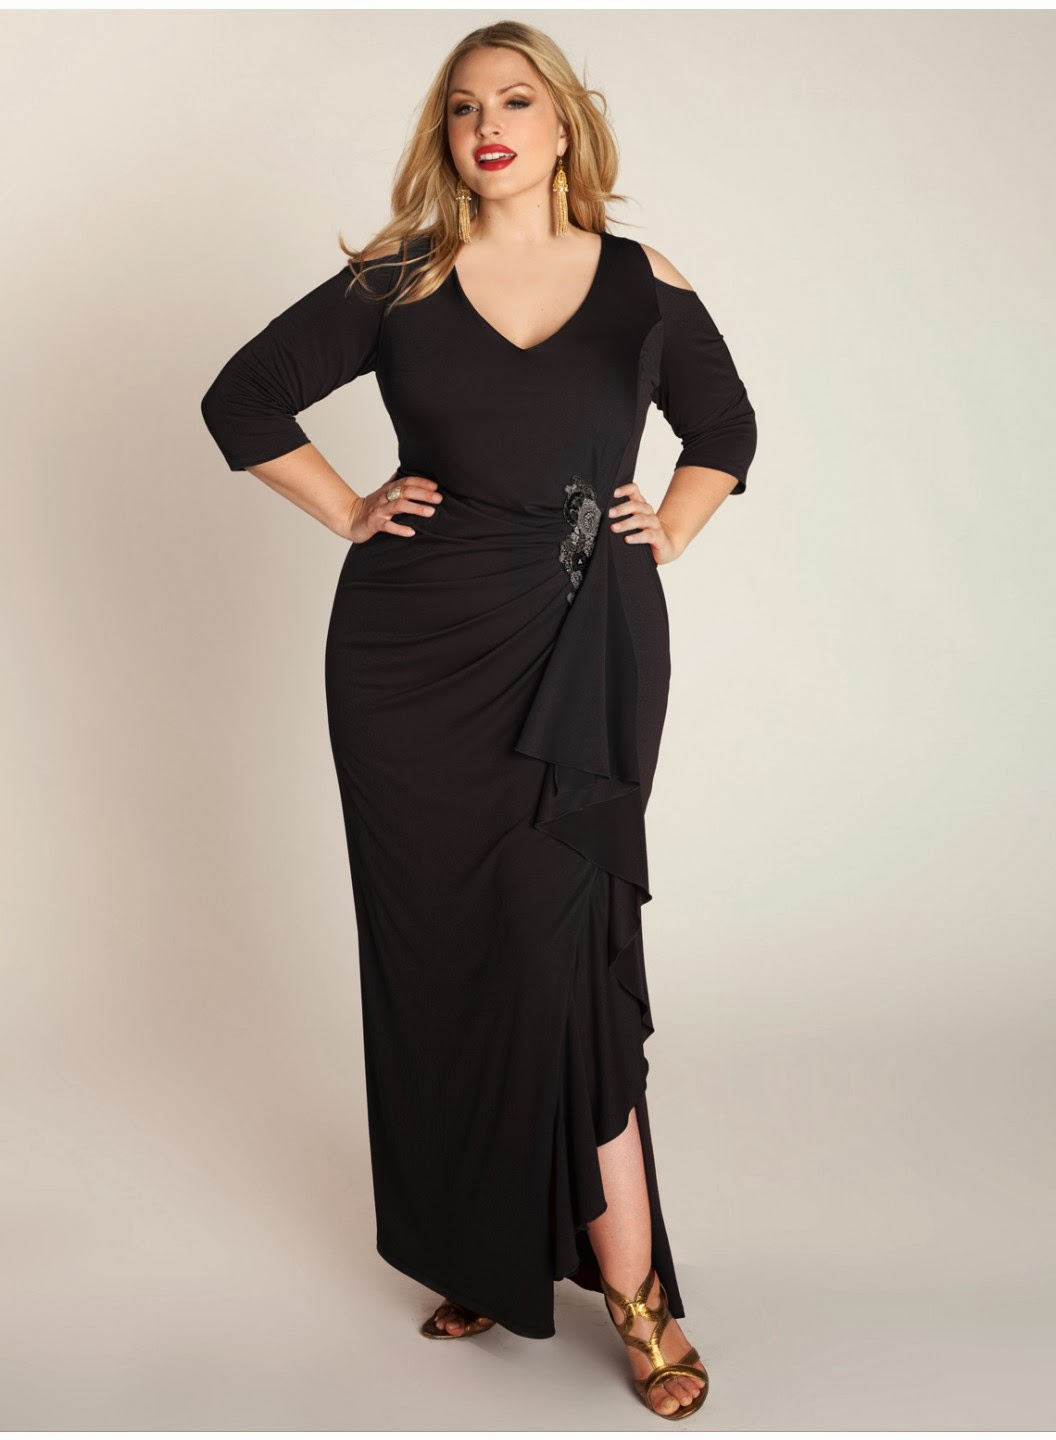 Plus Size Bridesmaid Dresses | DressedUpGirl.com